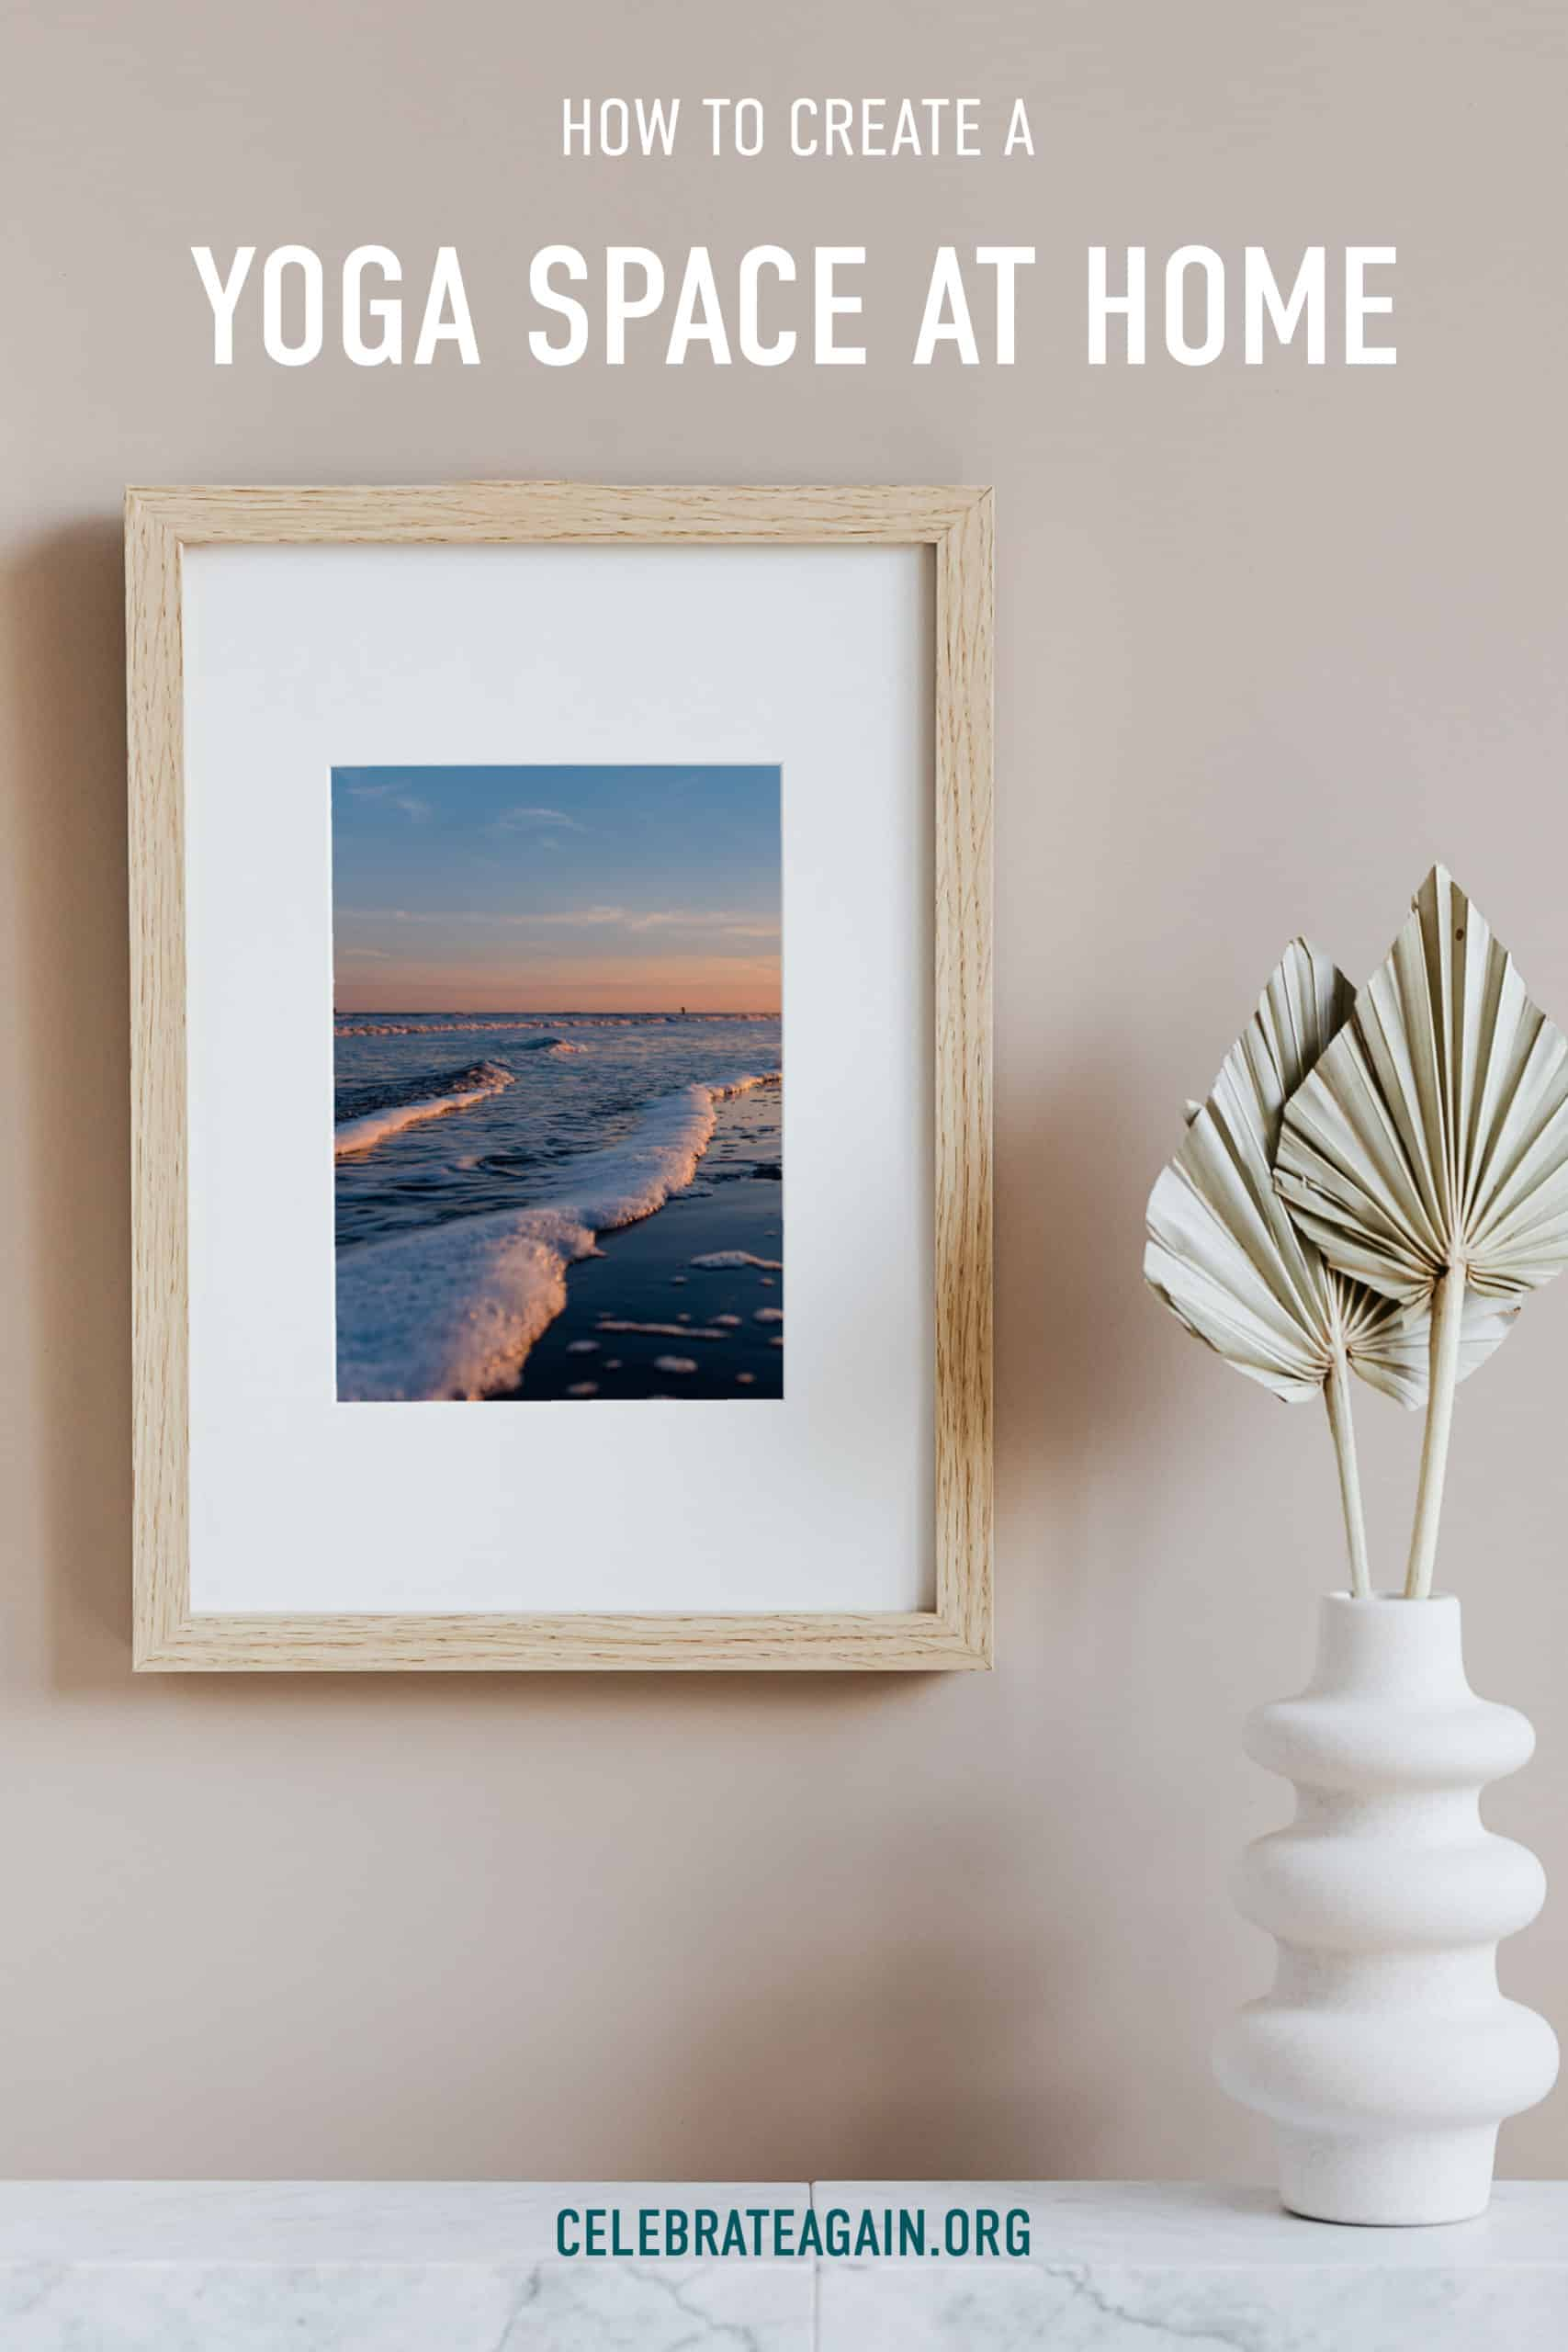 how to create a yoga space at home text photo by Celebrate Again of ocean waves at sunset hanging on a wall in a wooden frame next to a paper plant decor for a yoga space at home